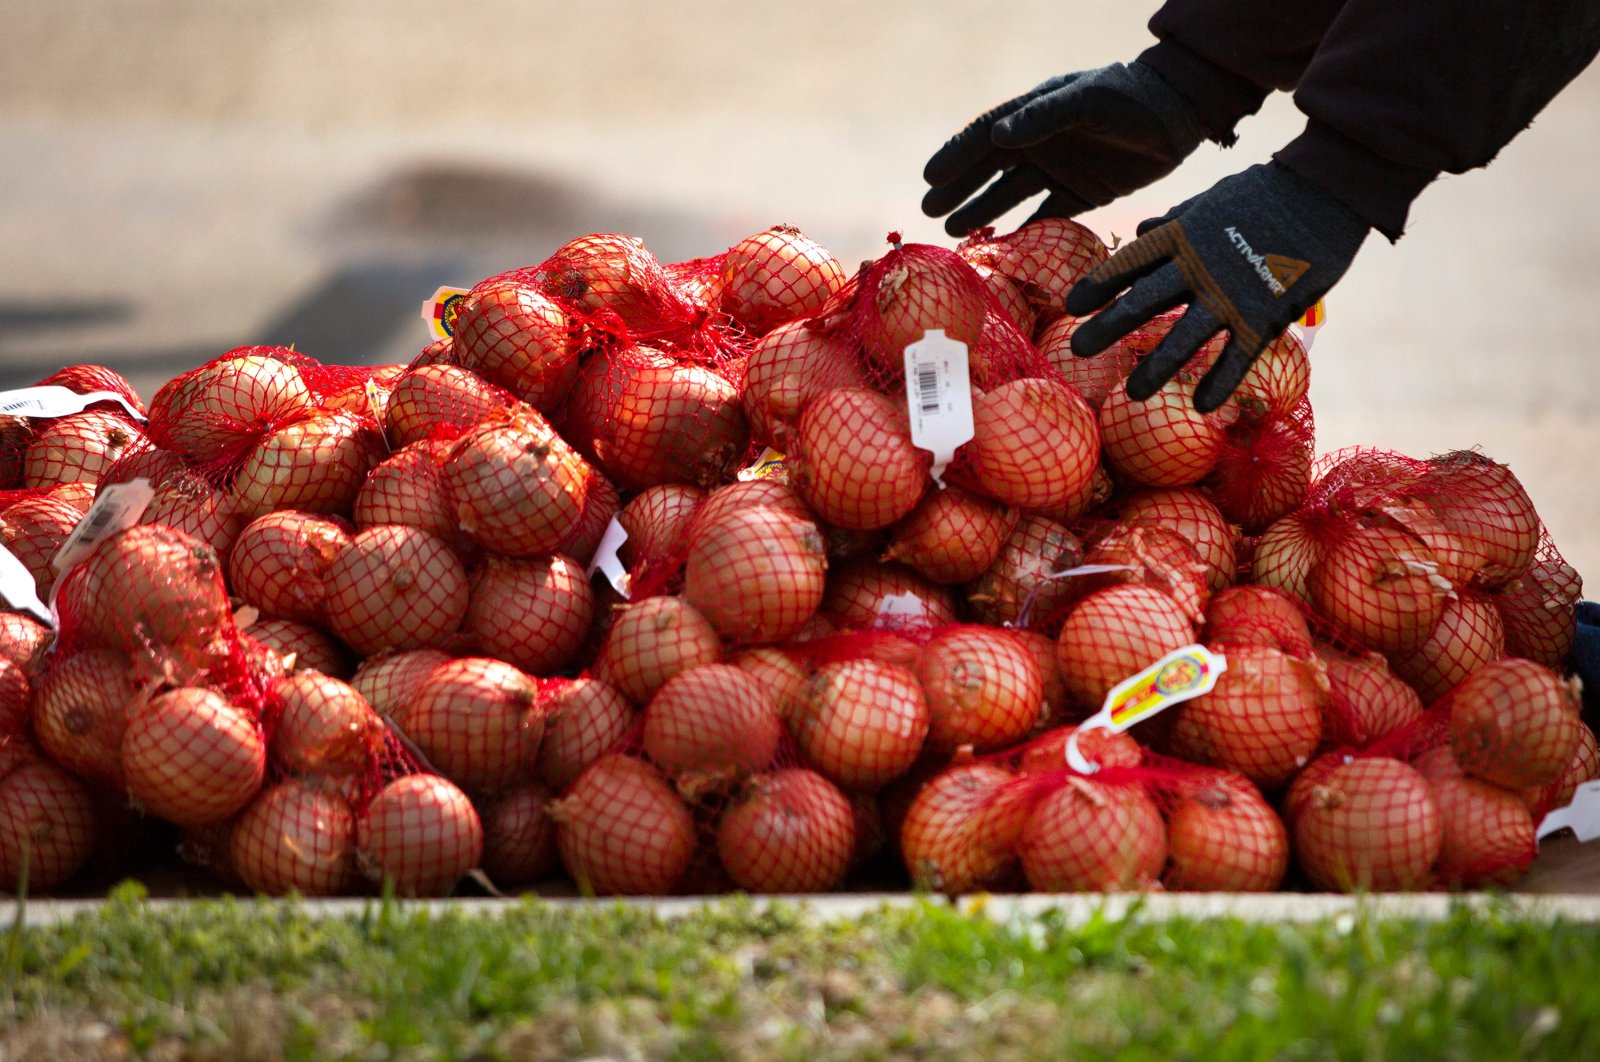 Mike Probst moves onions from a Loffredo Fresh Foods truck on April 15, 2020 in Des Moines. (Reuters Photo)